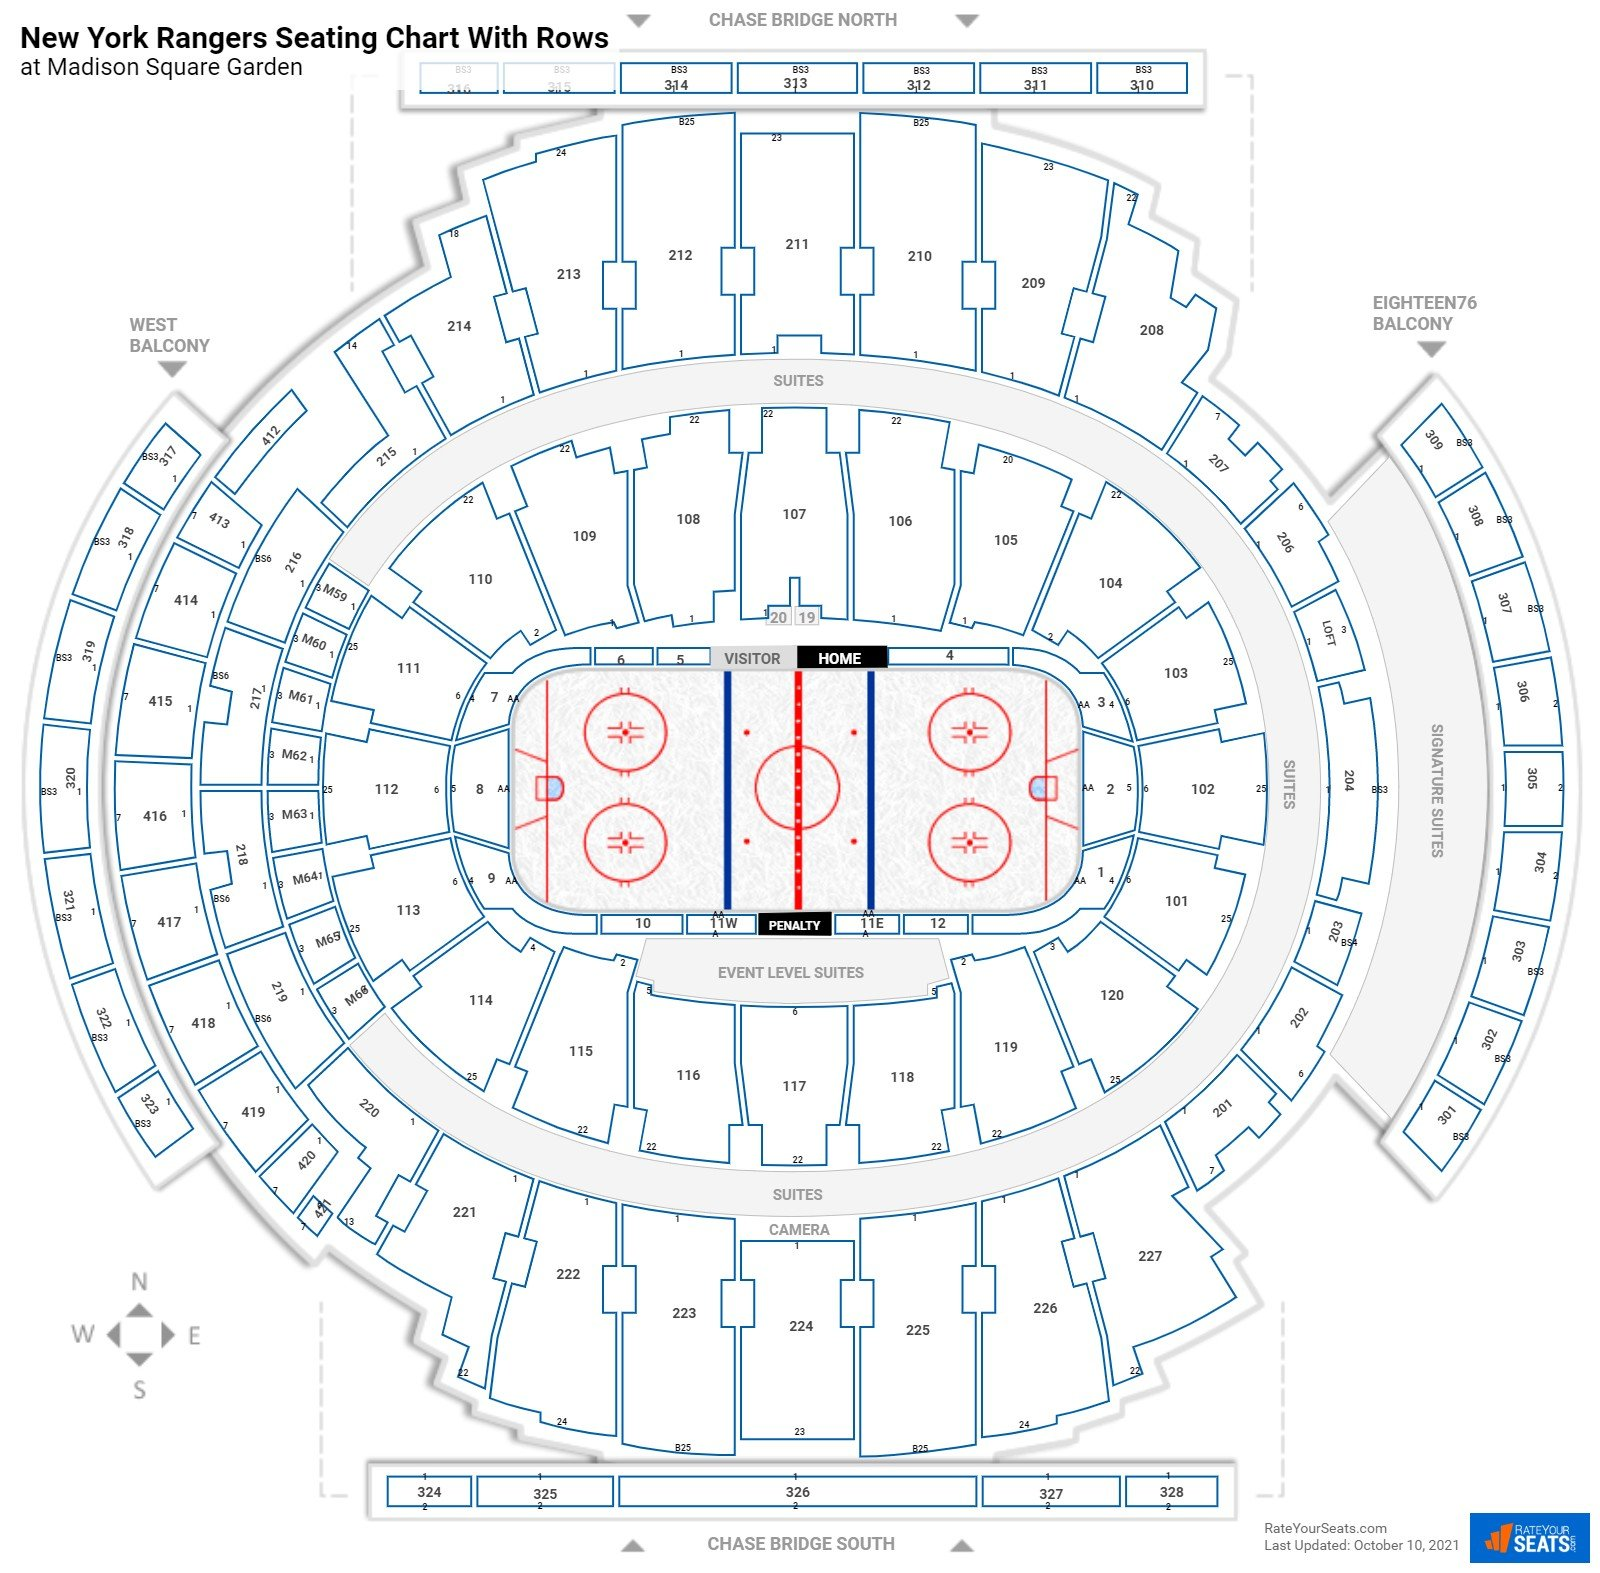 Madison Square Garden Seating For Rangers Games Rateyourseats Com